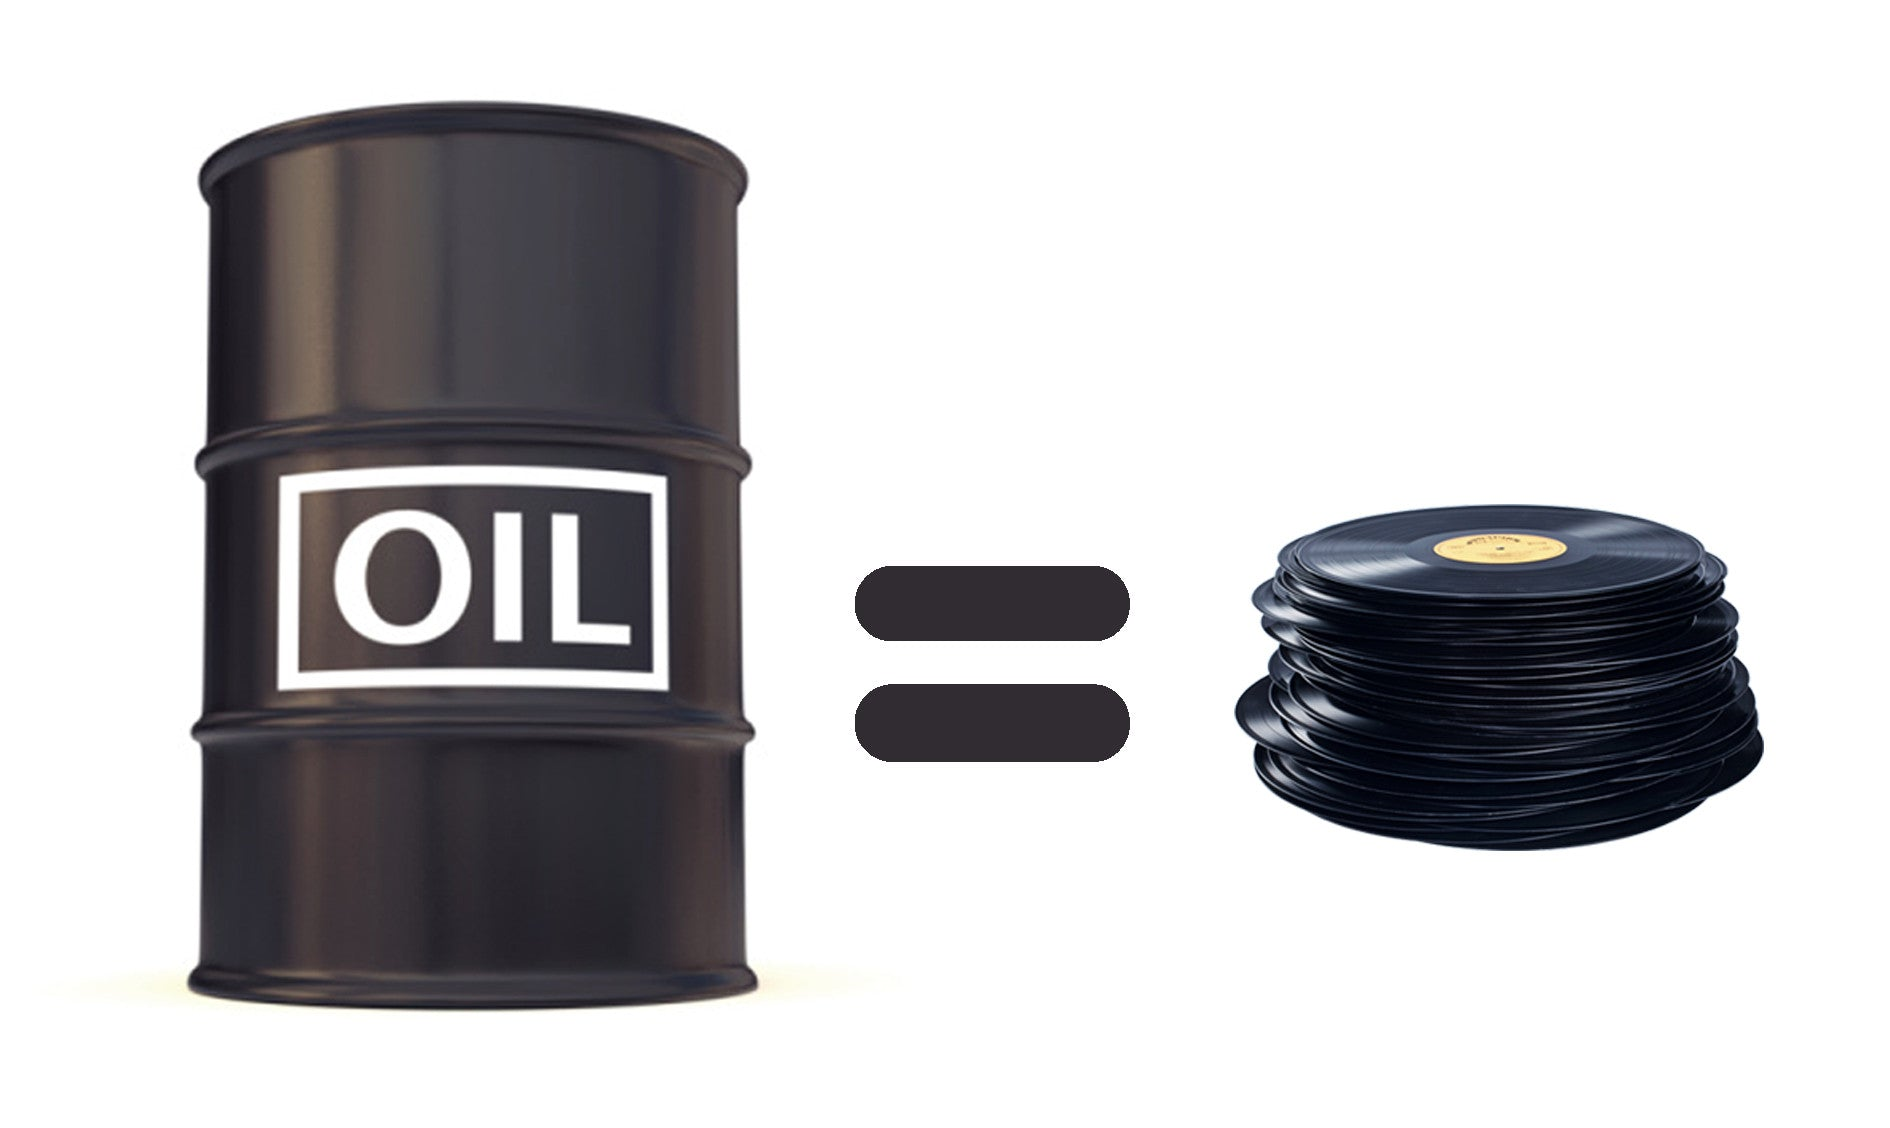 oil equals vinyl